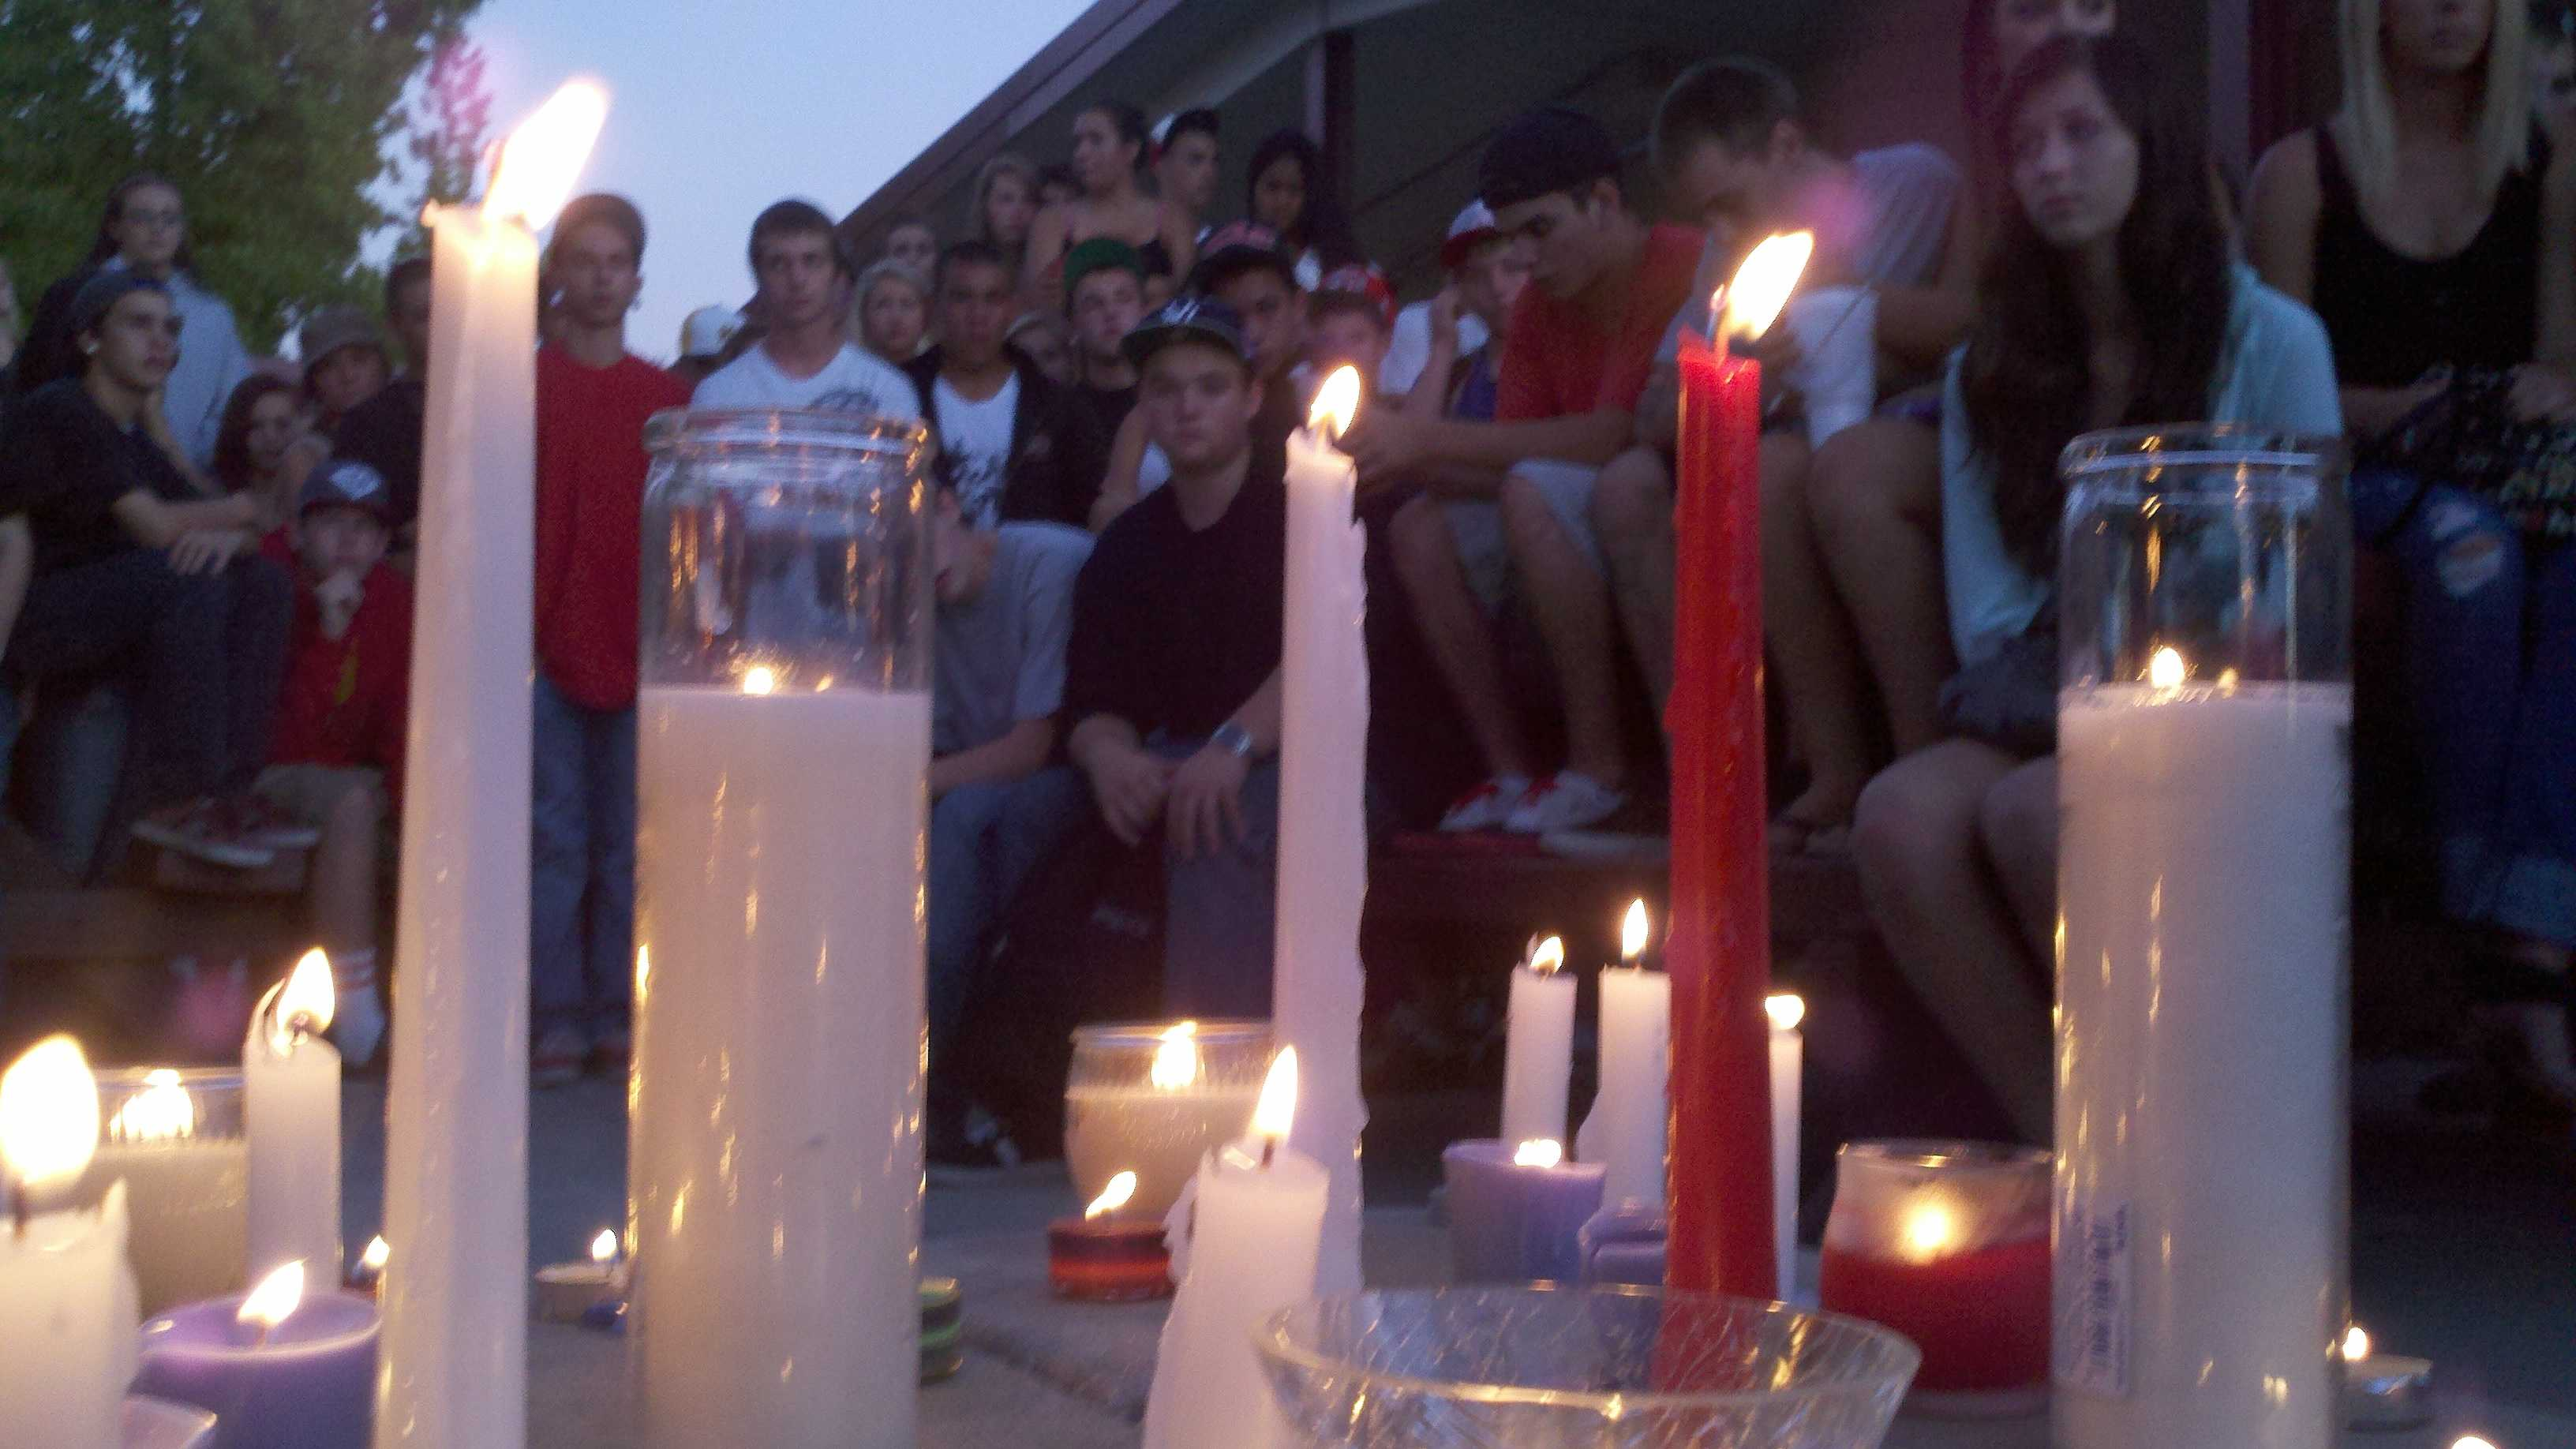 A candlelight vigil is held for the death of Alejandro Nunez Avila.